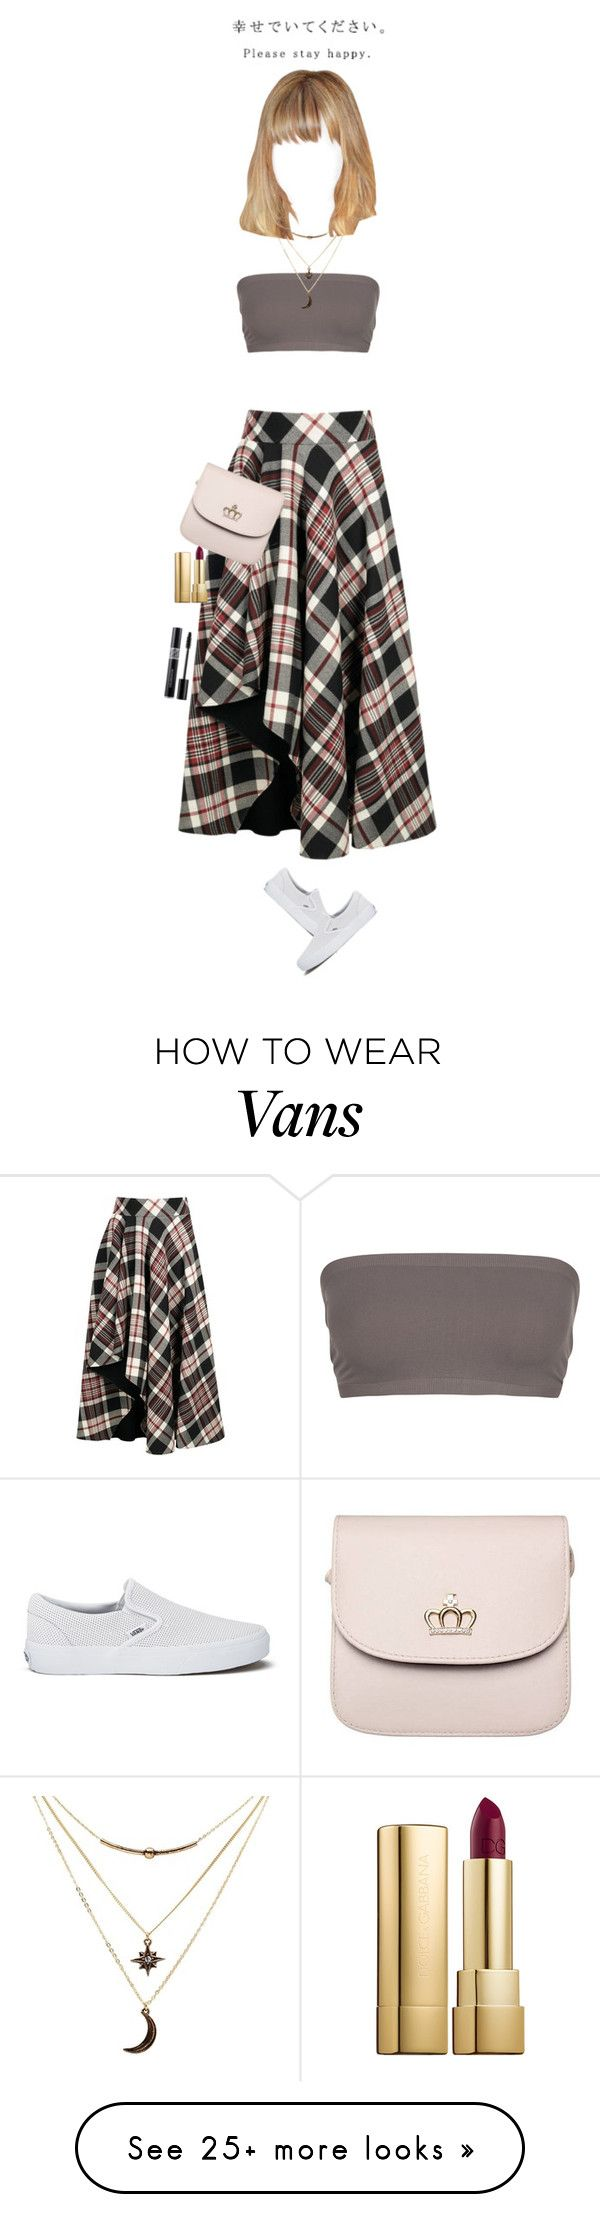 """""""Hipster-ish Day"""" by luxury-kamar on Polyvore featuring Full Tilt, Vans, Alexander McQueen, Dolce&Gabbana, Christian Dior and Charlotte Russe"""